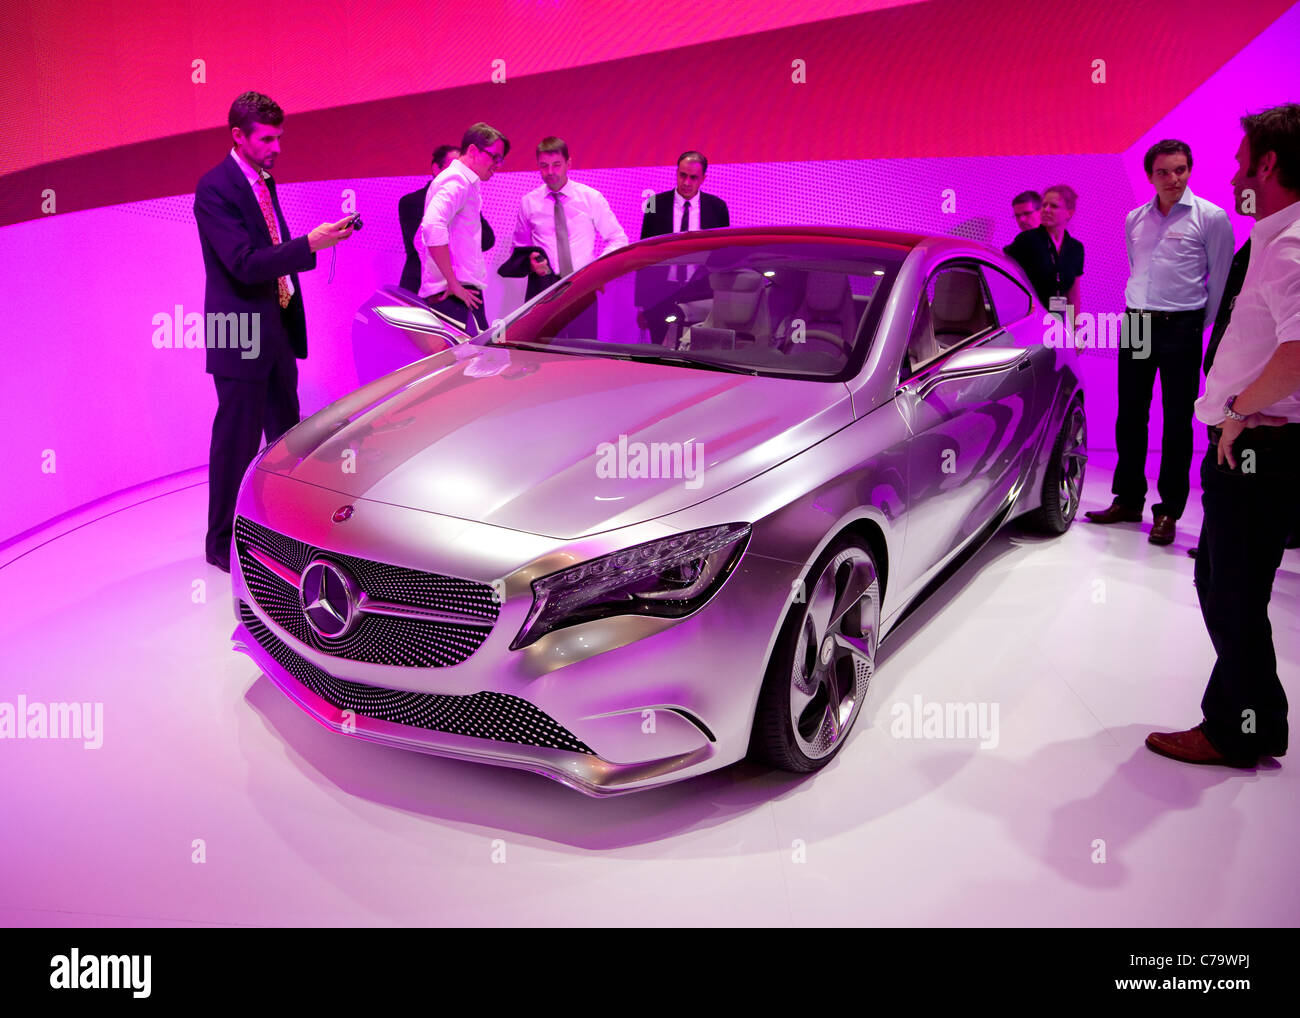 New Mercedes Benz A-Class Concept on the IAA 2011 International Motor Show in Frankfurt am Main, Germany - Stock Image